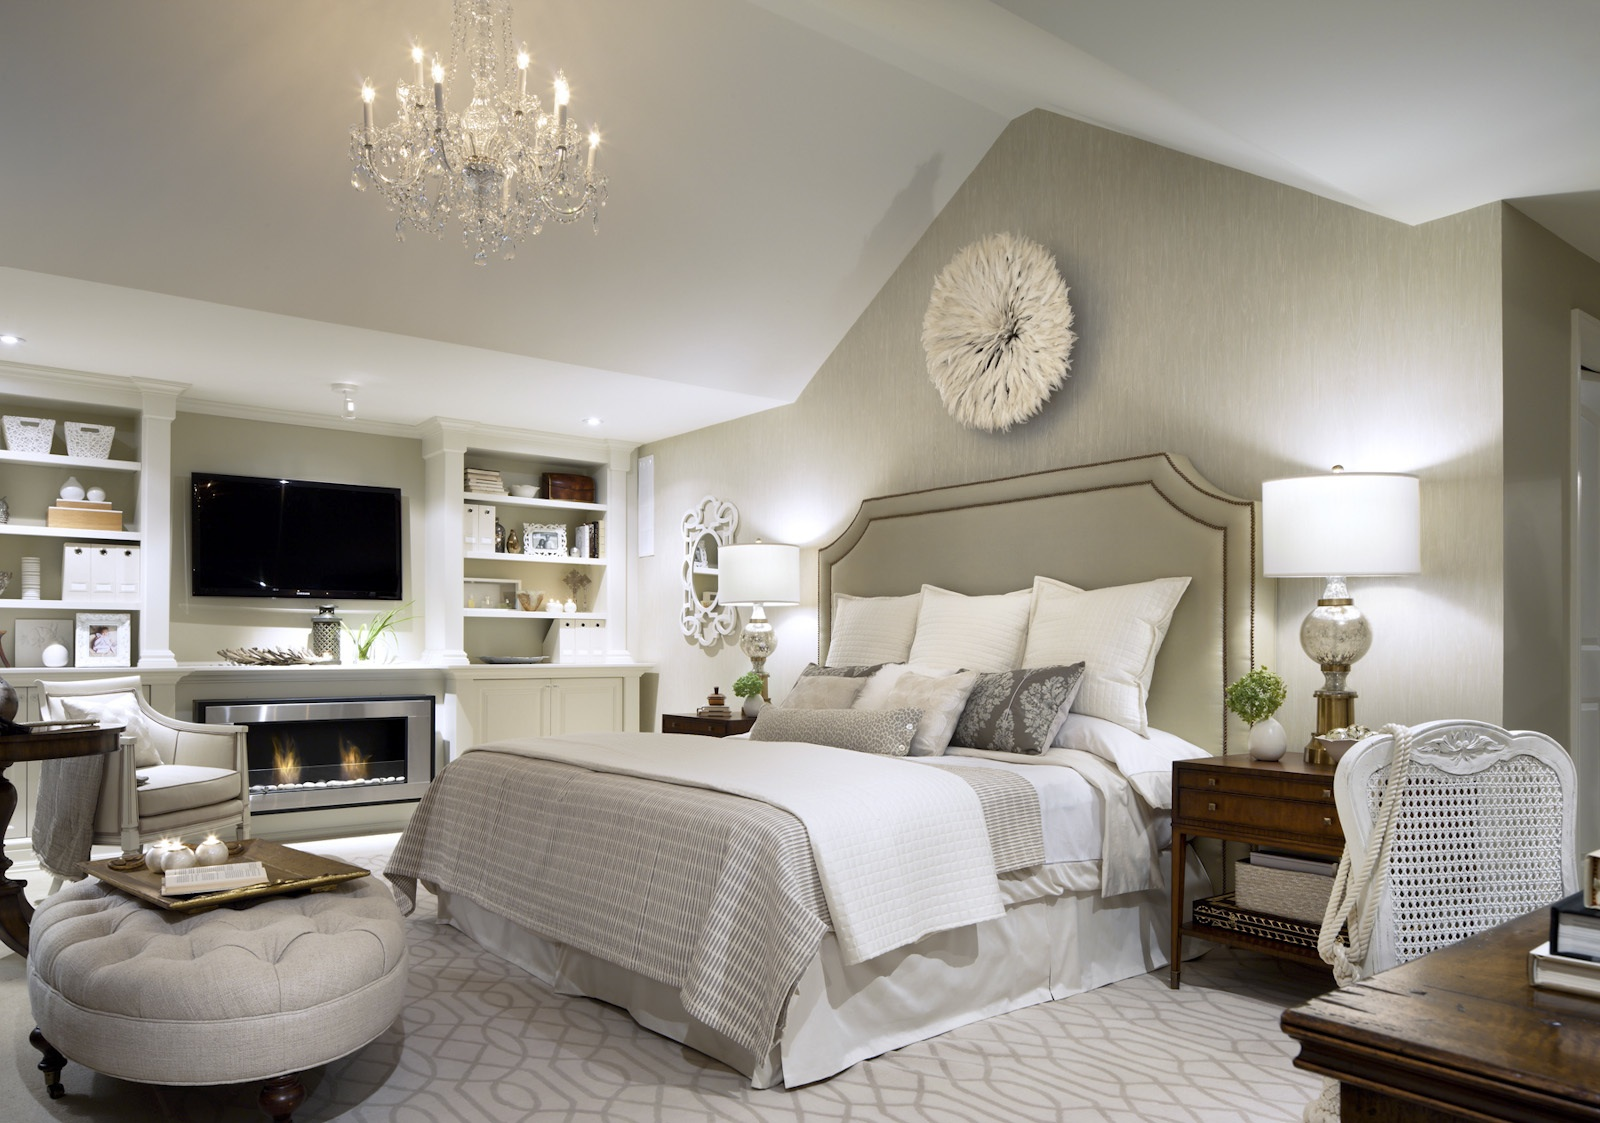 Candice Olson Bedroom Design Is Full Of Warm And Calm Color